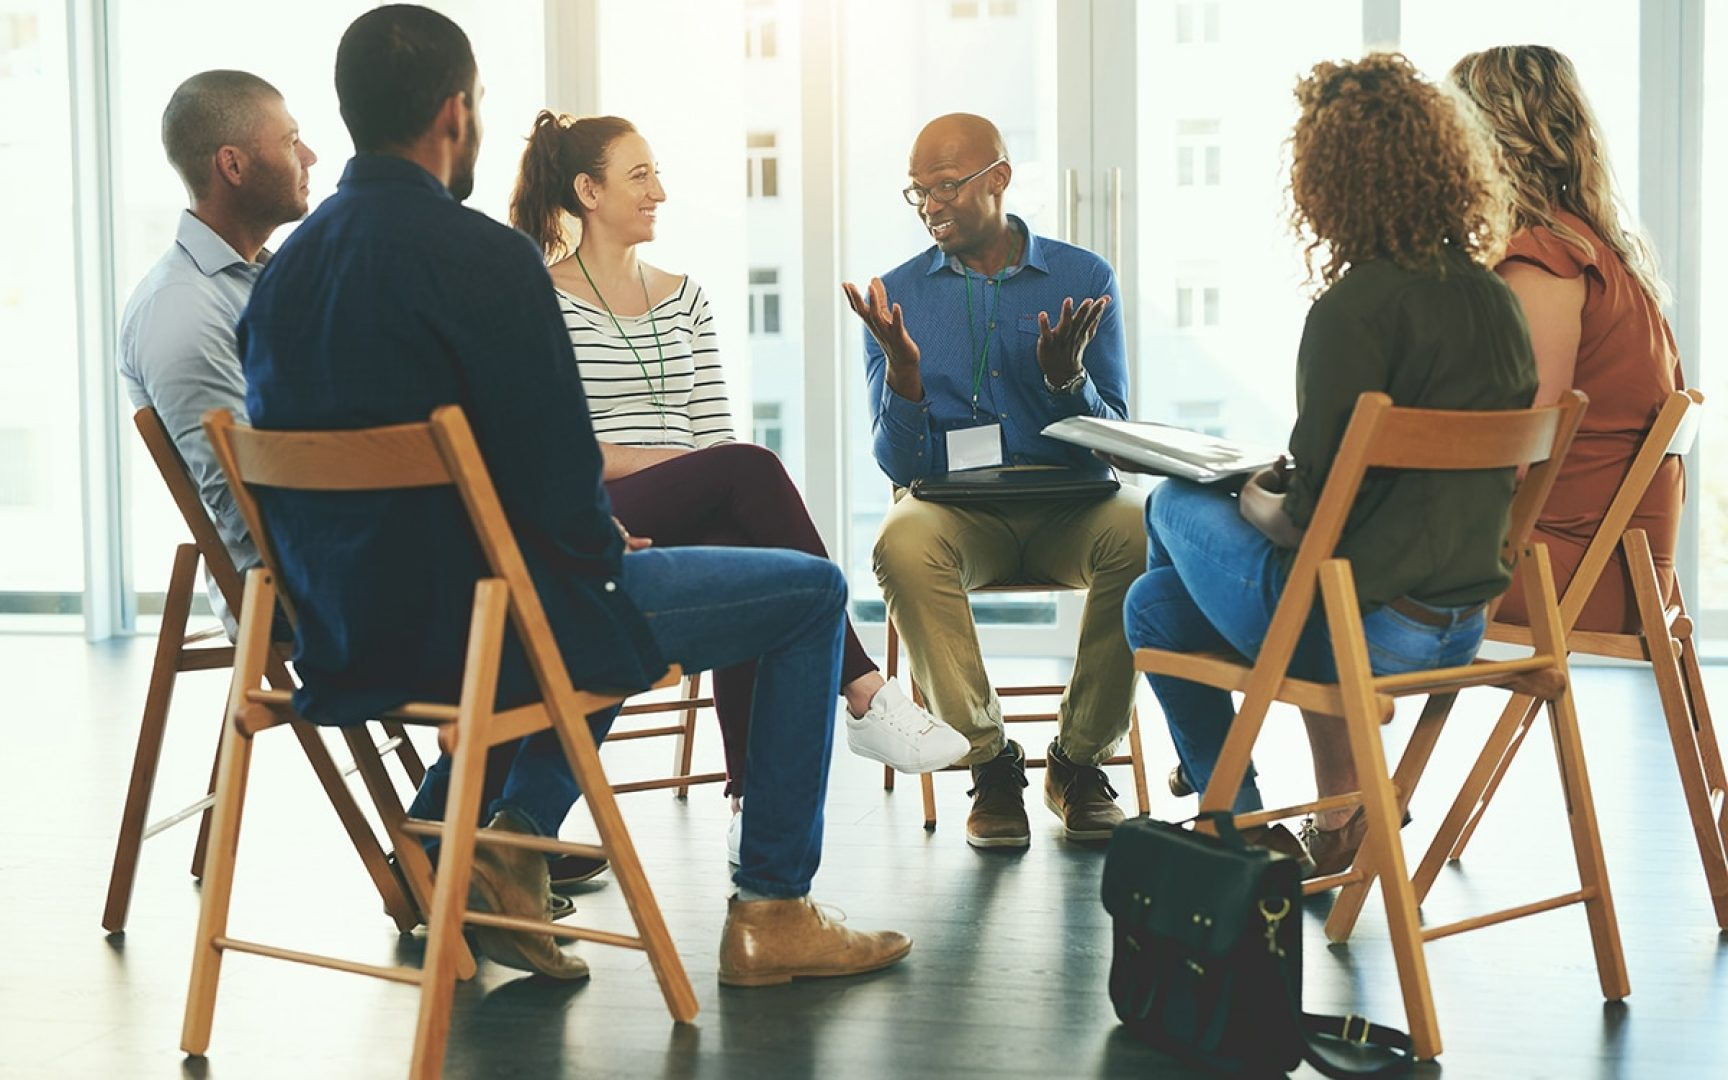 Small group of people talk in a circle